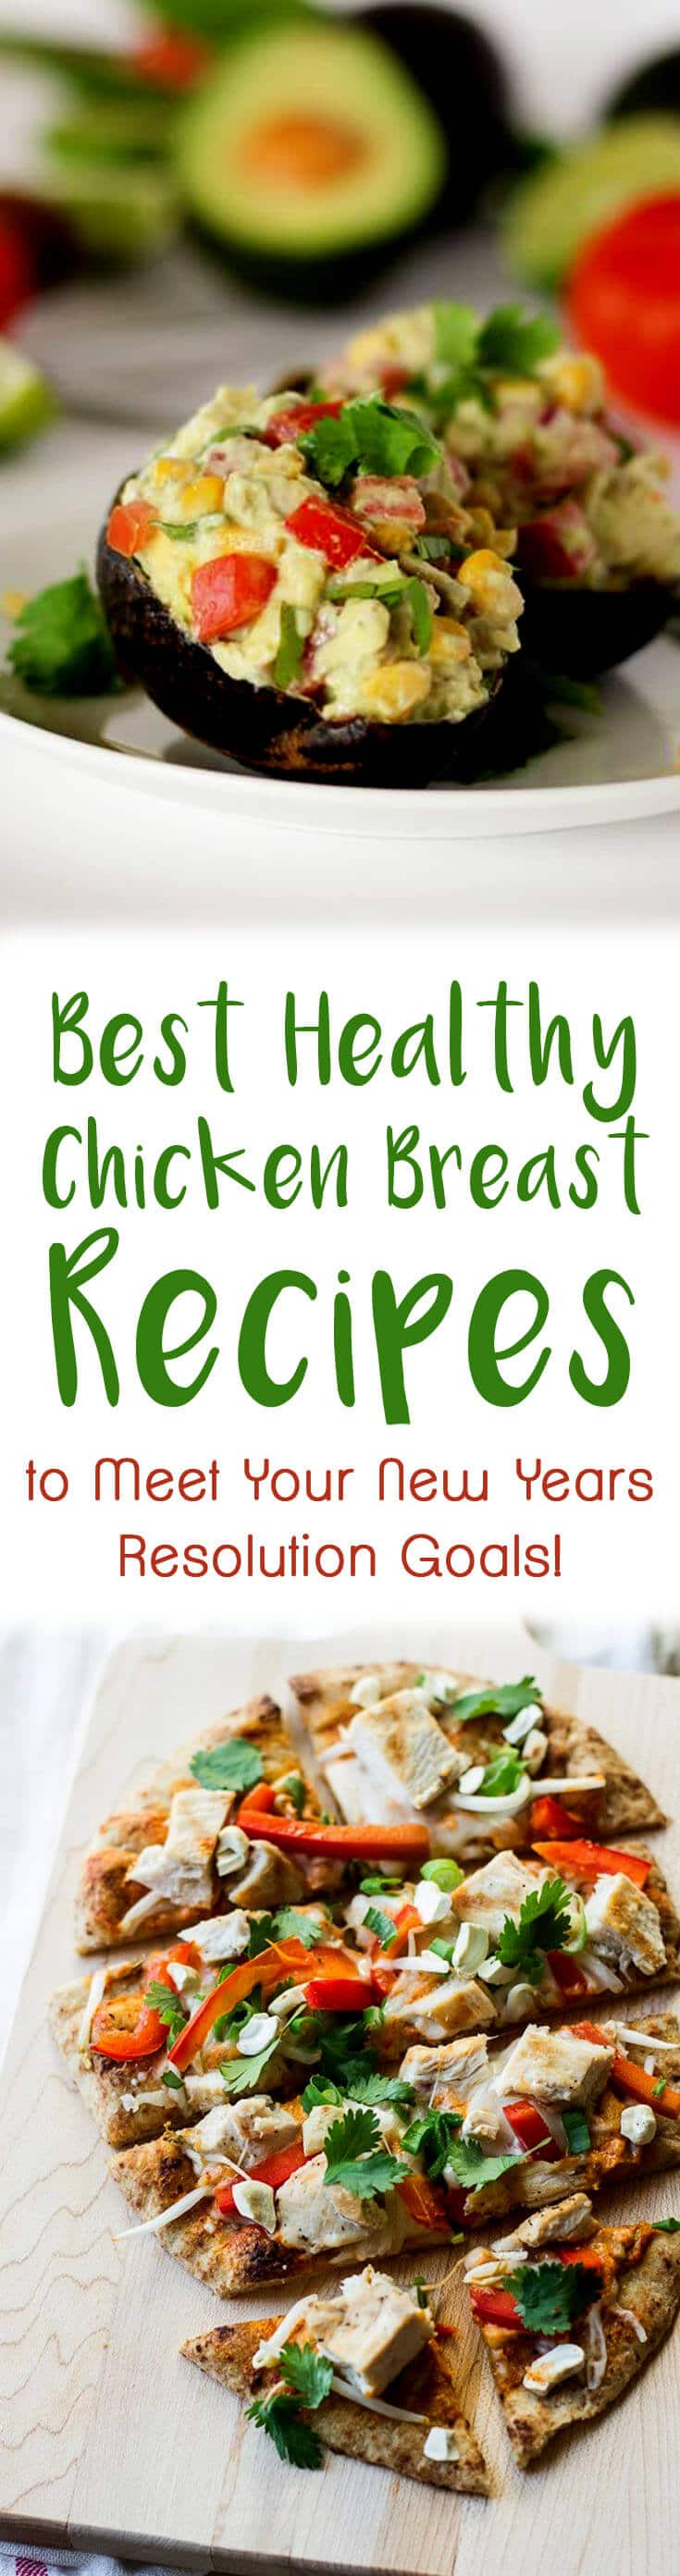 These chicken breast recipes are yummy ways to eat healthy to reach your New Year's Goals!